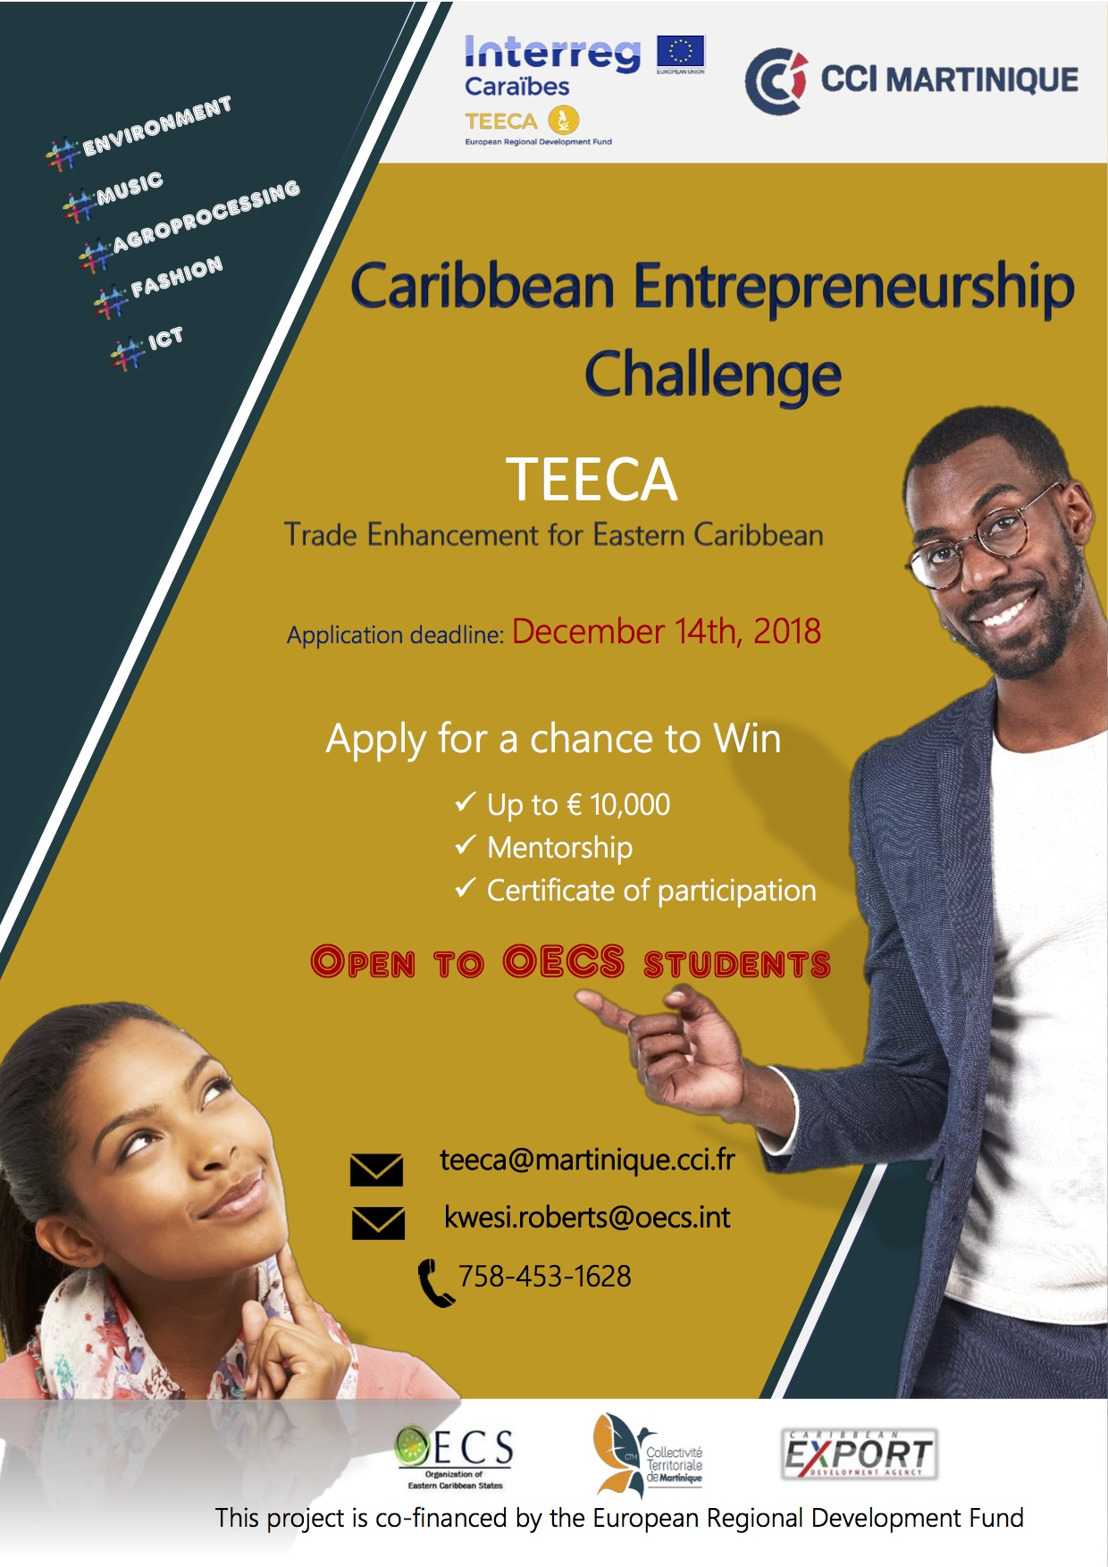 TEECA Project Launches Caribbean Entrepreneurship Challenge